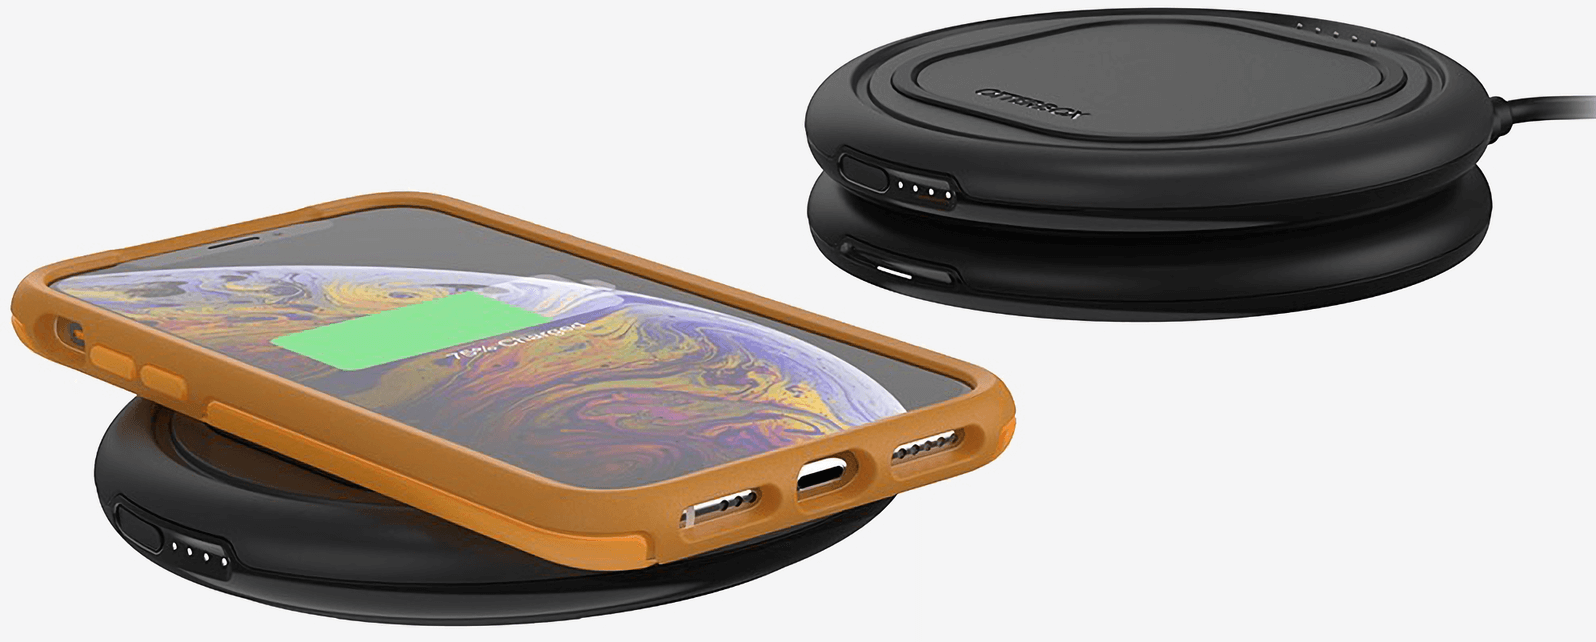 OtterBox's latest is a stackable, wireless charging battery system